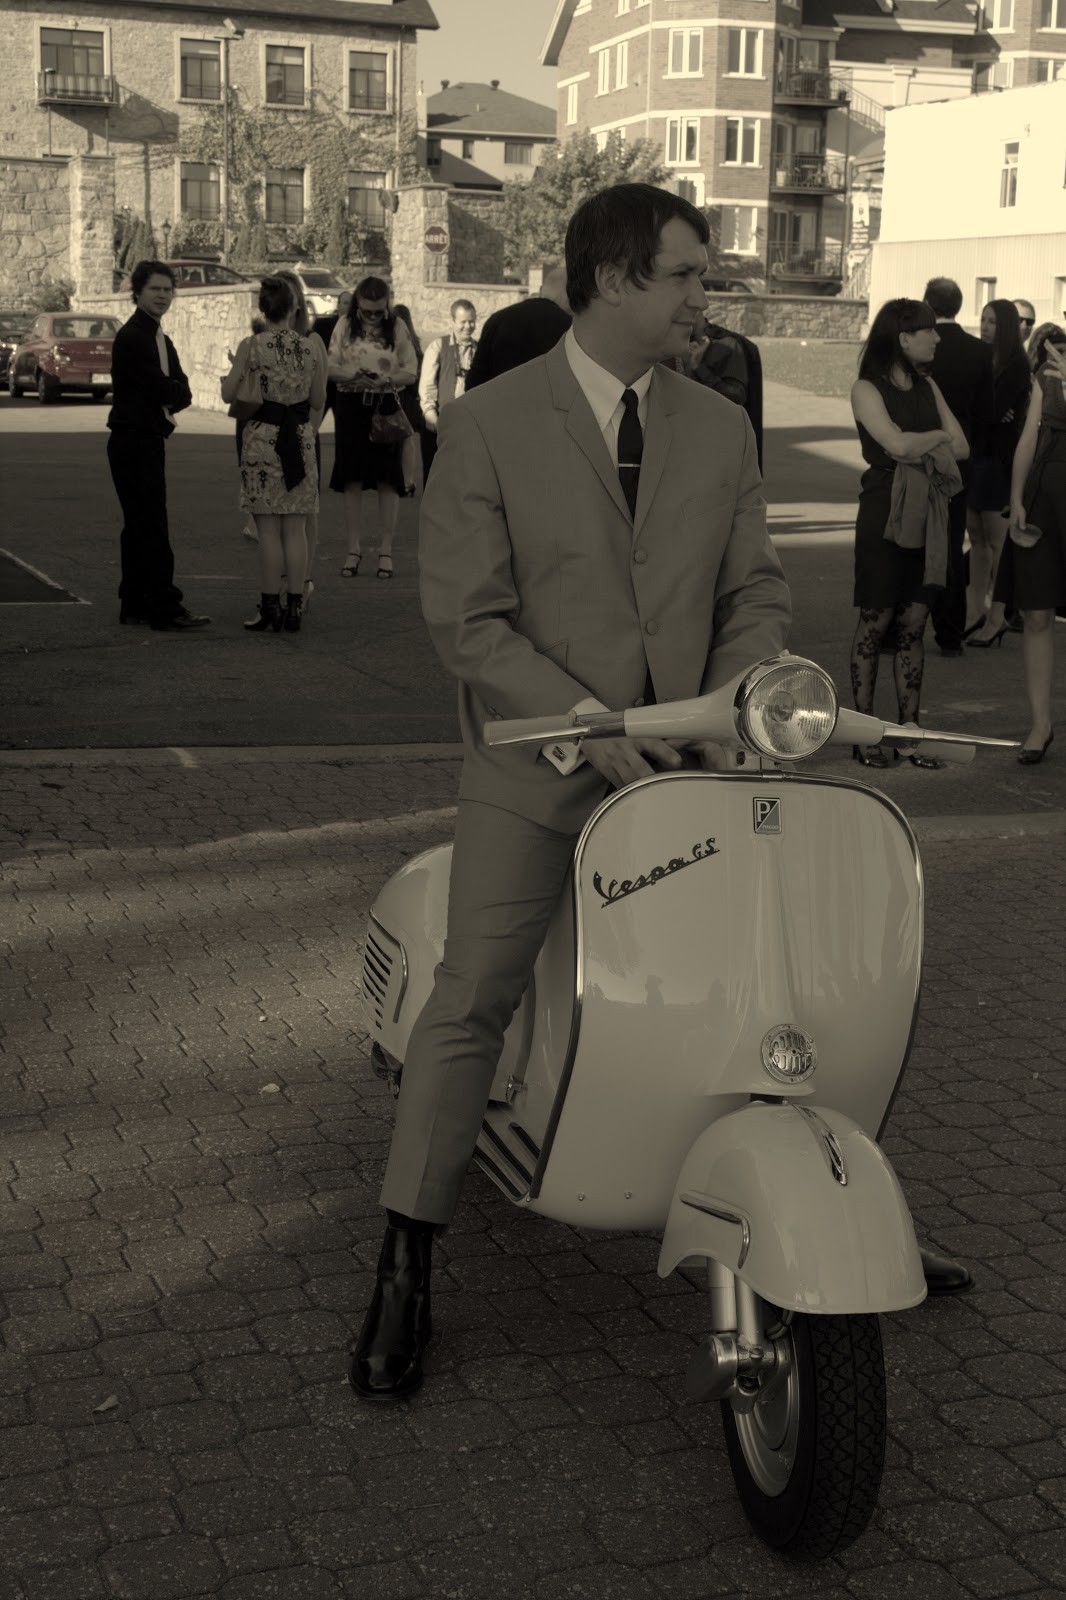 150 Best Tarot Images On Pinterest: Parka Avenue: What Is The Ultimate Mod Scooter? Vespa Vs